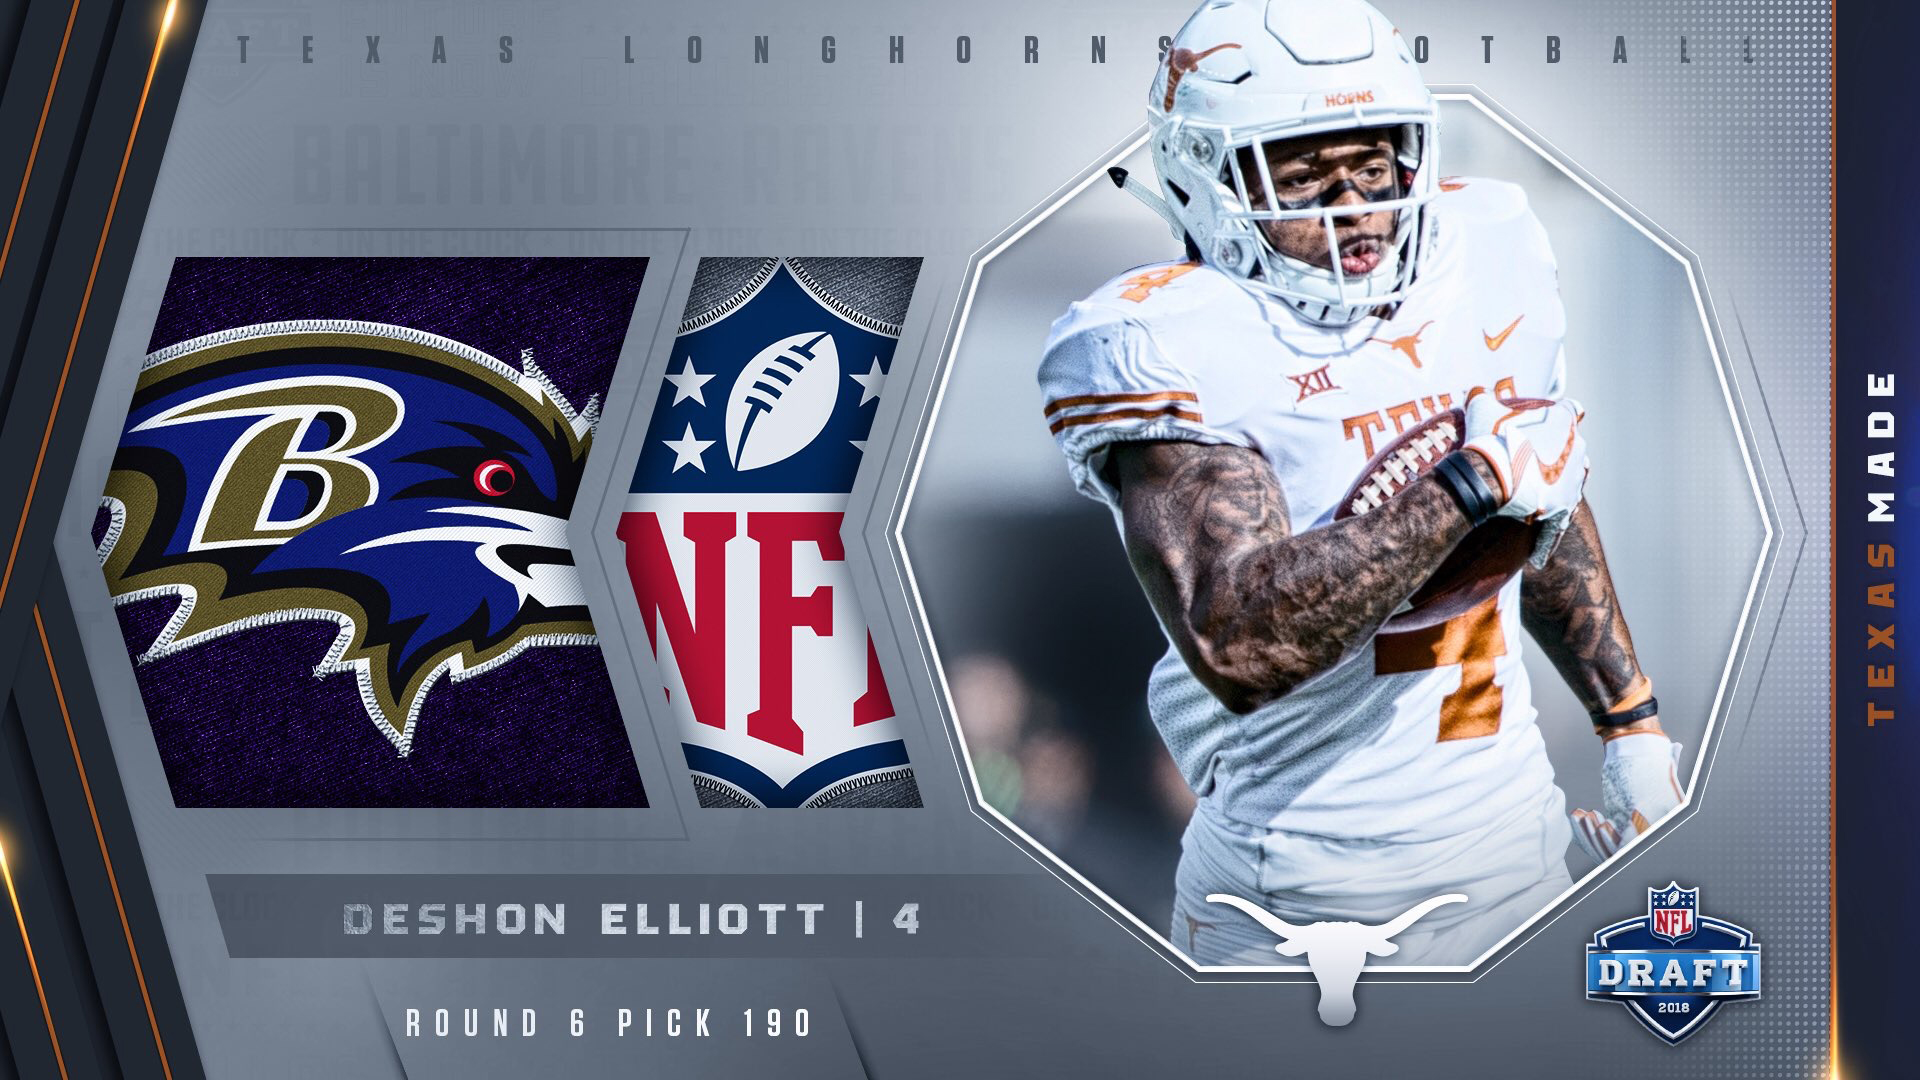 finest selection c5b6e 4d75b DeShon Elliott drafted by Baltimore Ravens - University of ...